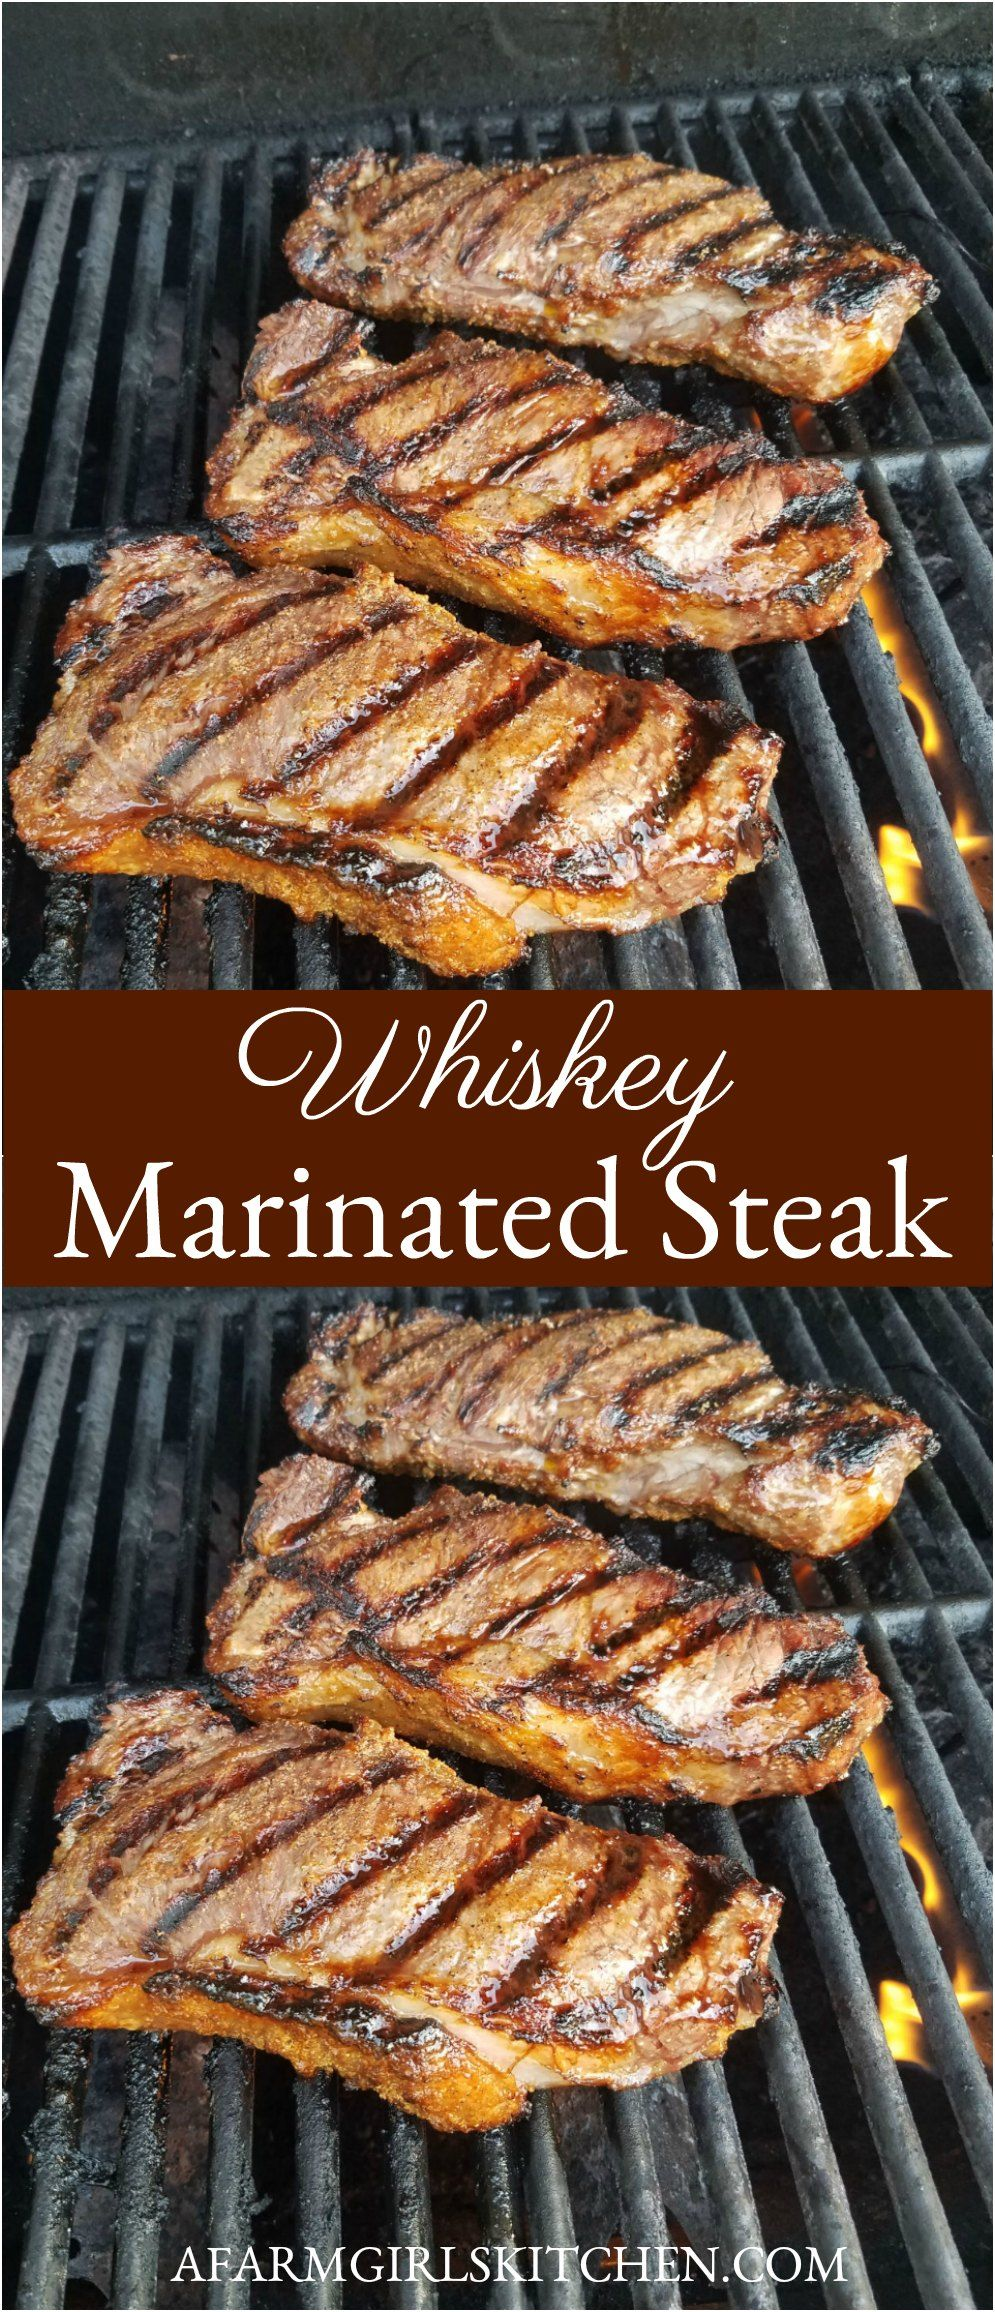 Whiskey Marinated Steak